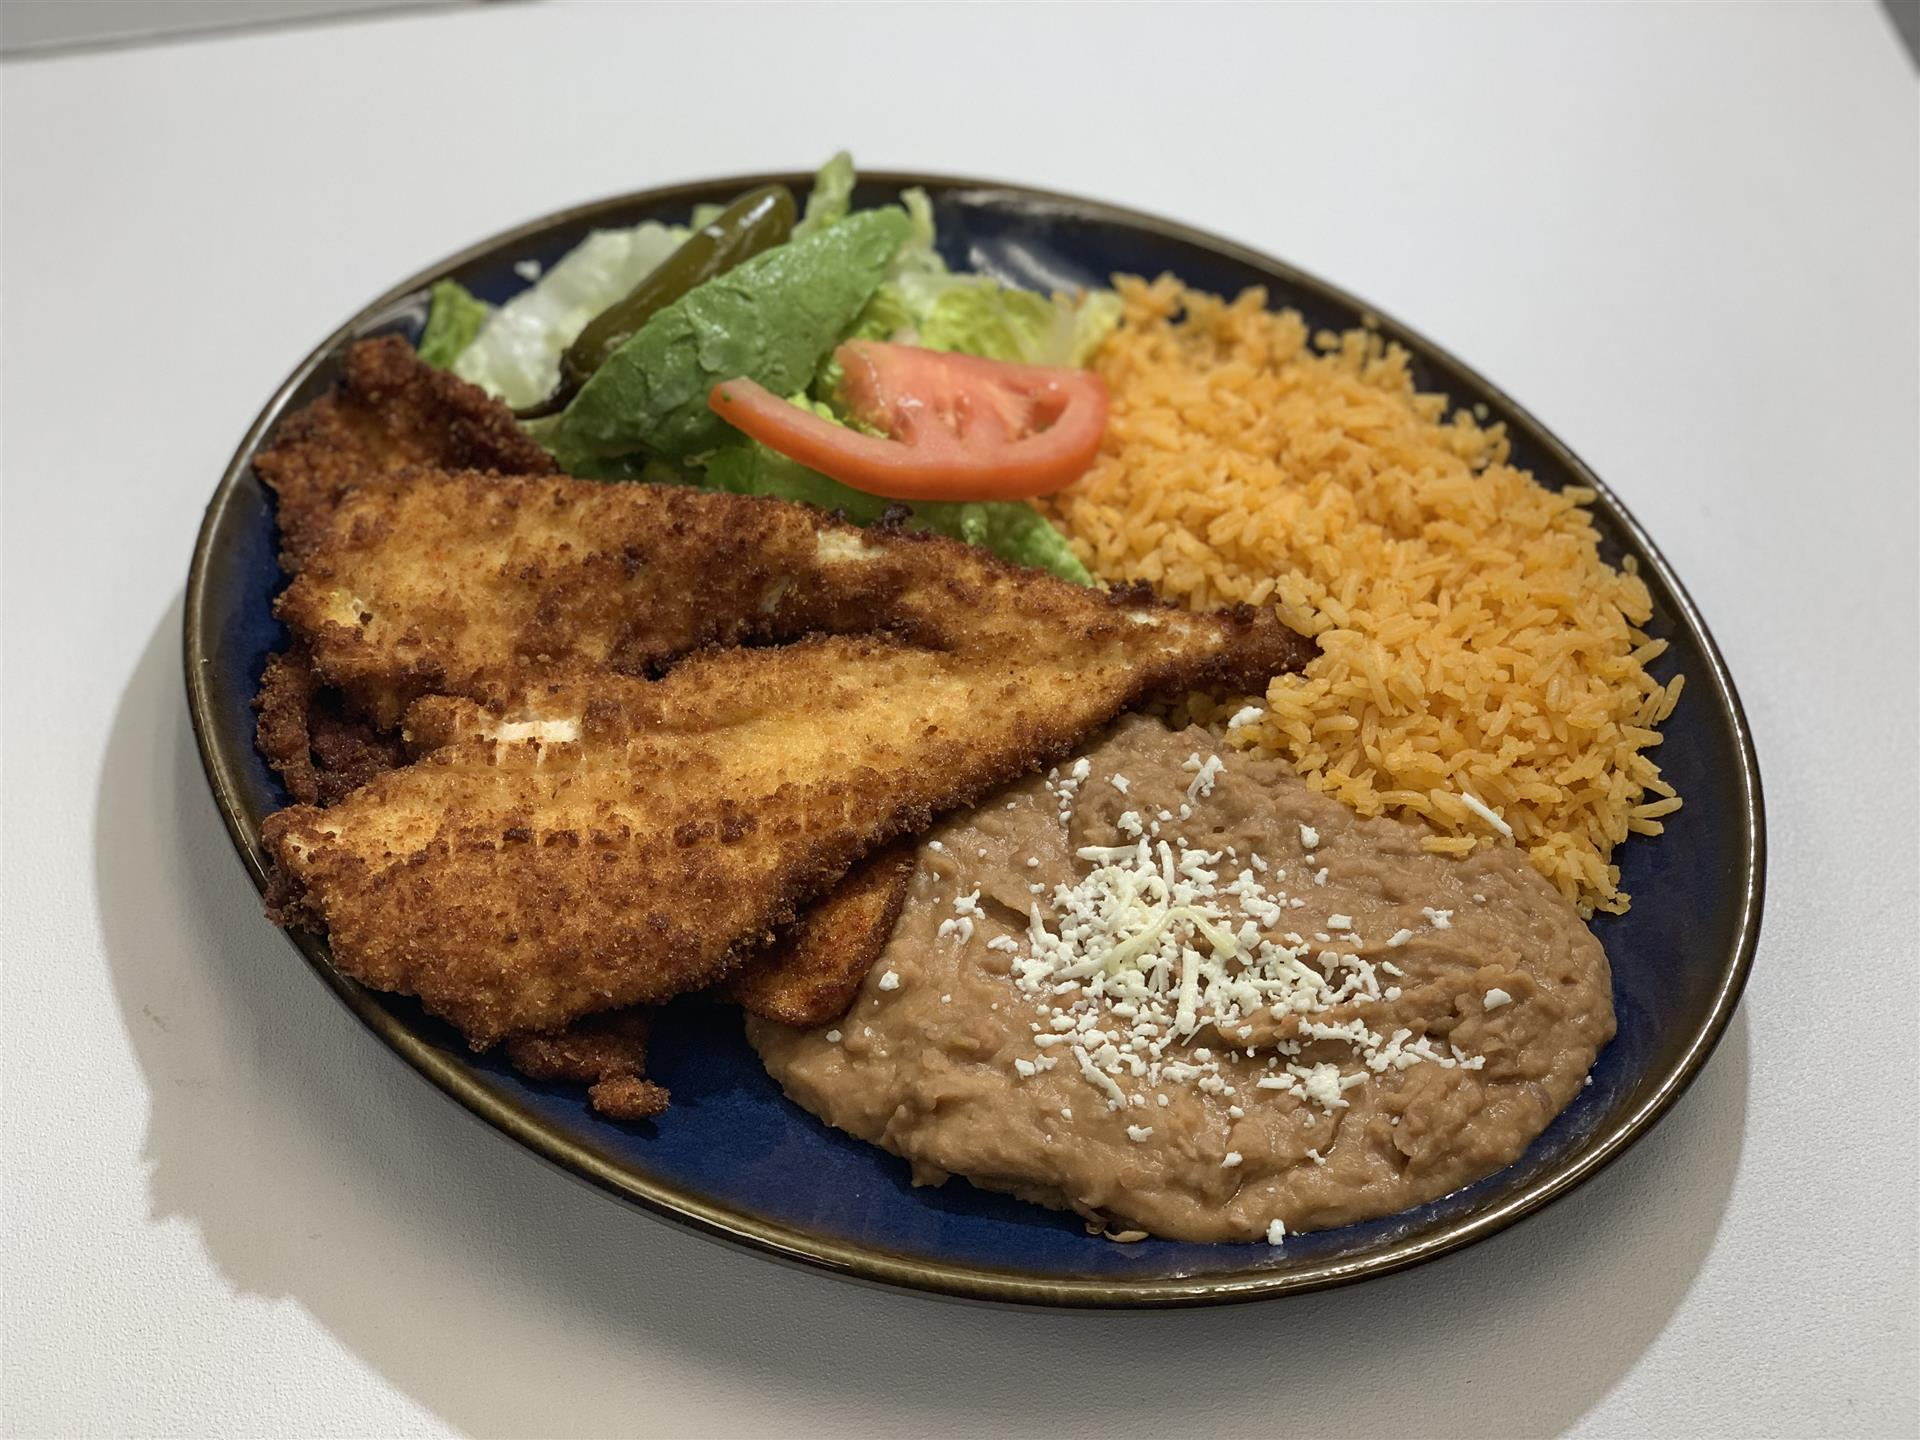 Guilotas: Fried whole quail with roasted tomatillo sauce, rice and beans.